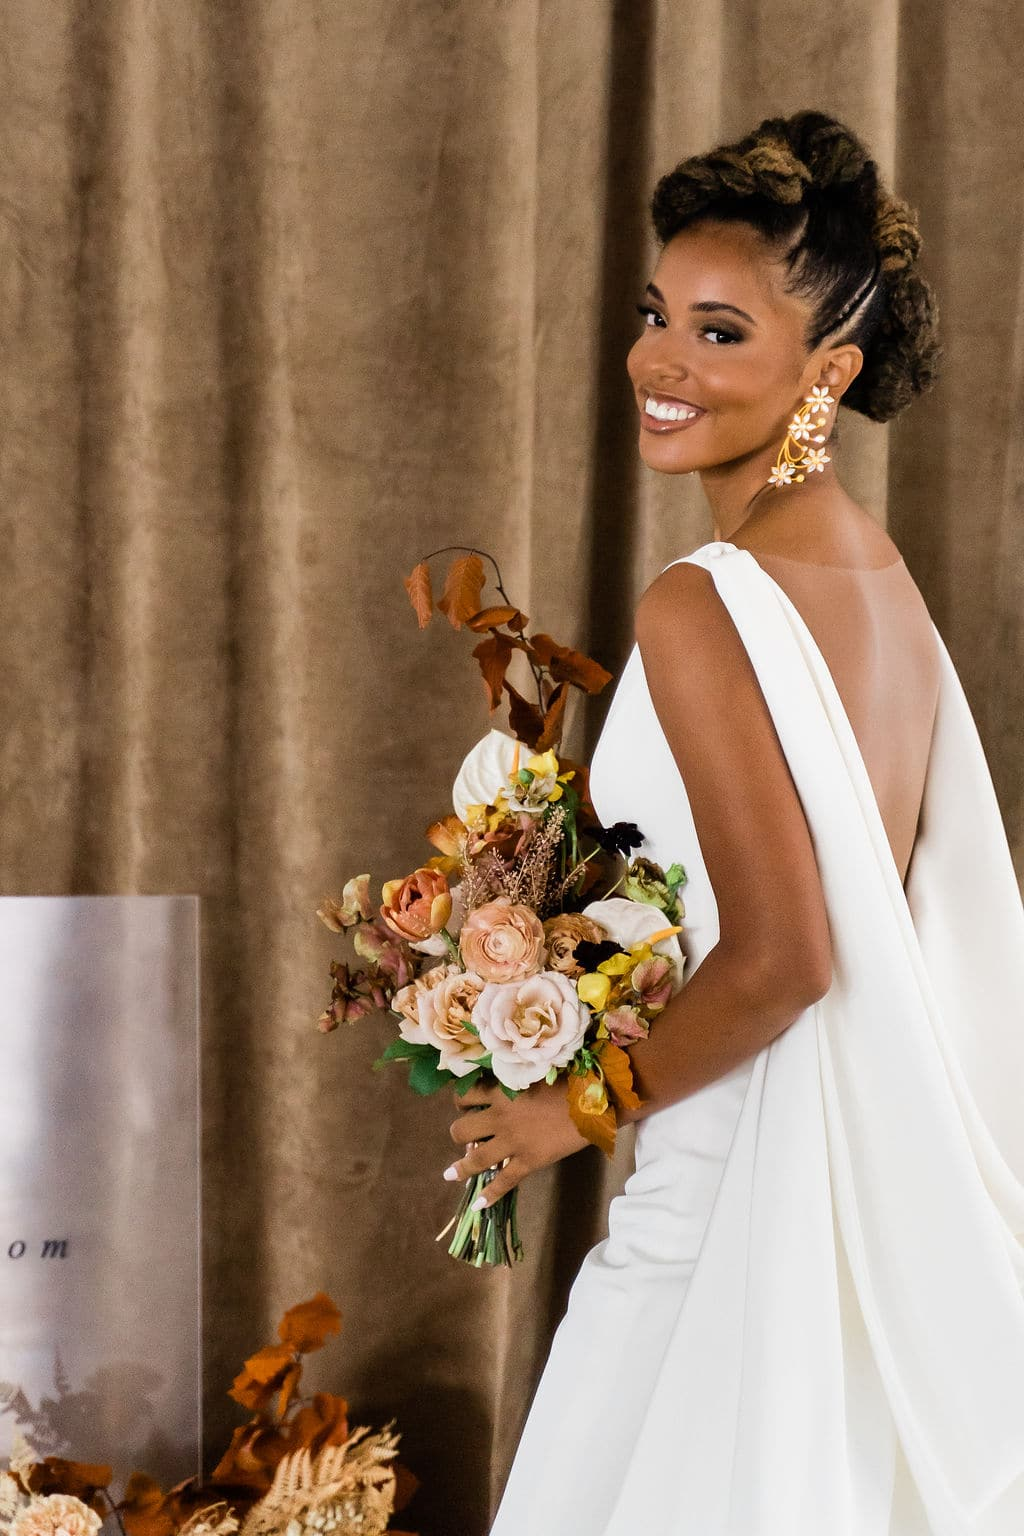 african woman wearing backless wedding dress smiling and holding a bouquet with neutral tone flowers in front of her